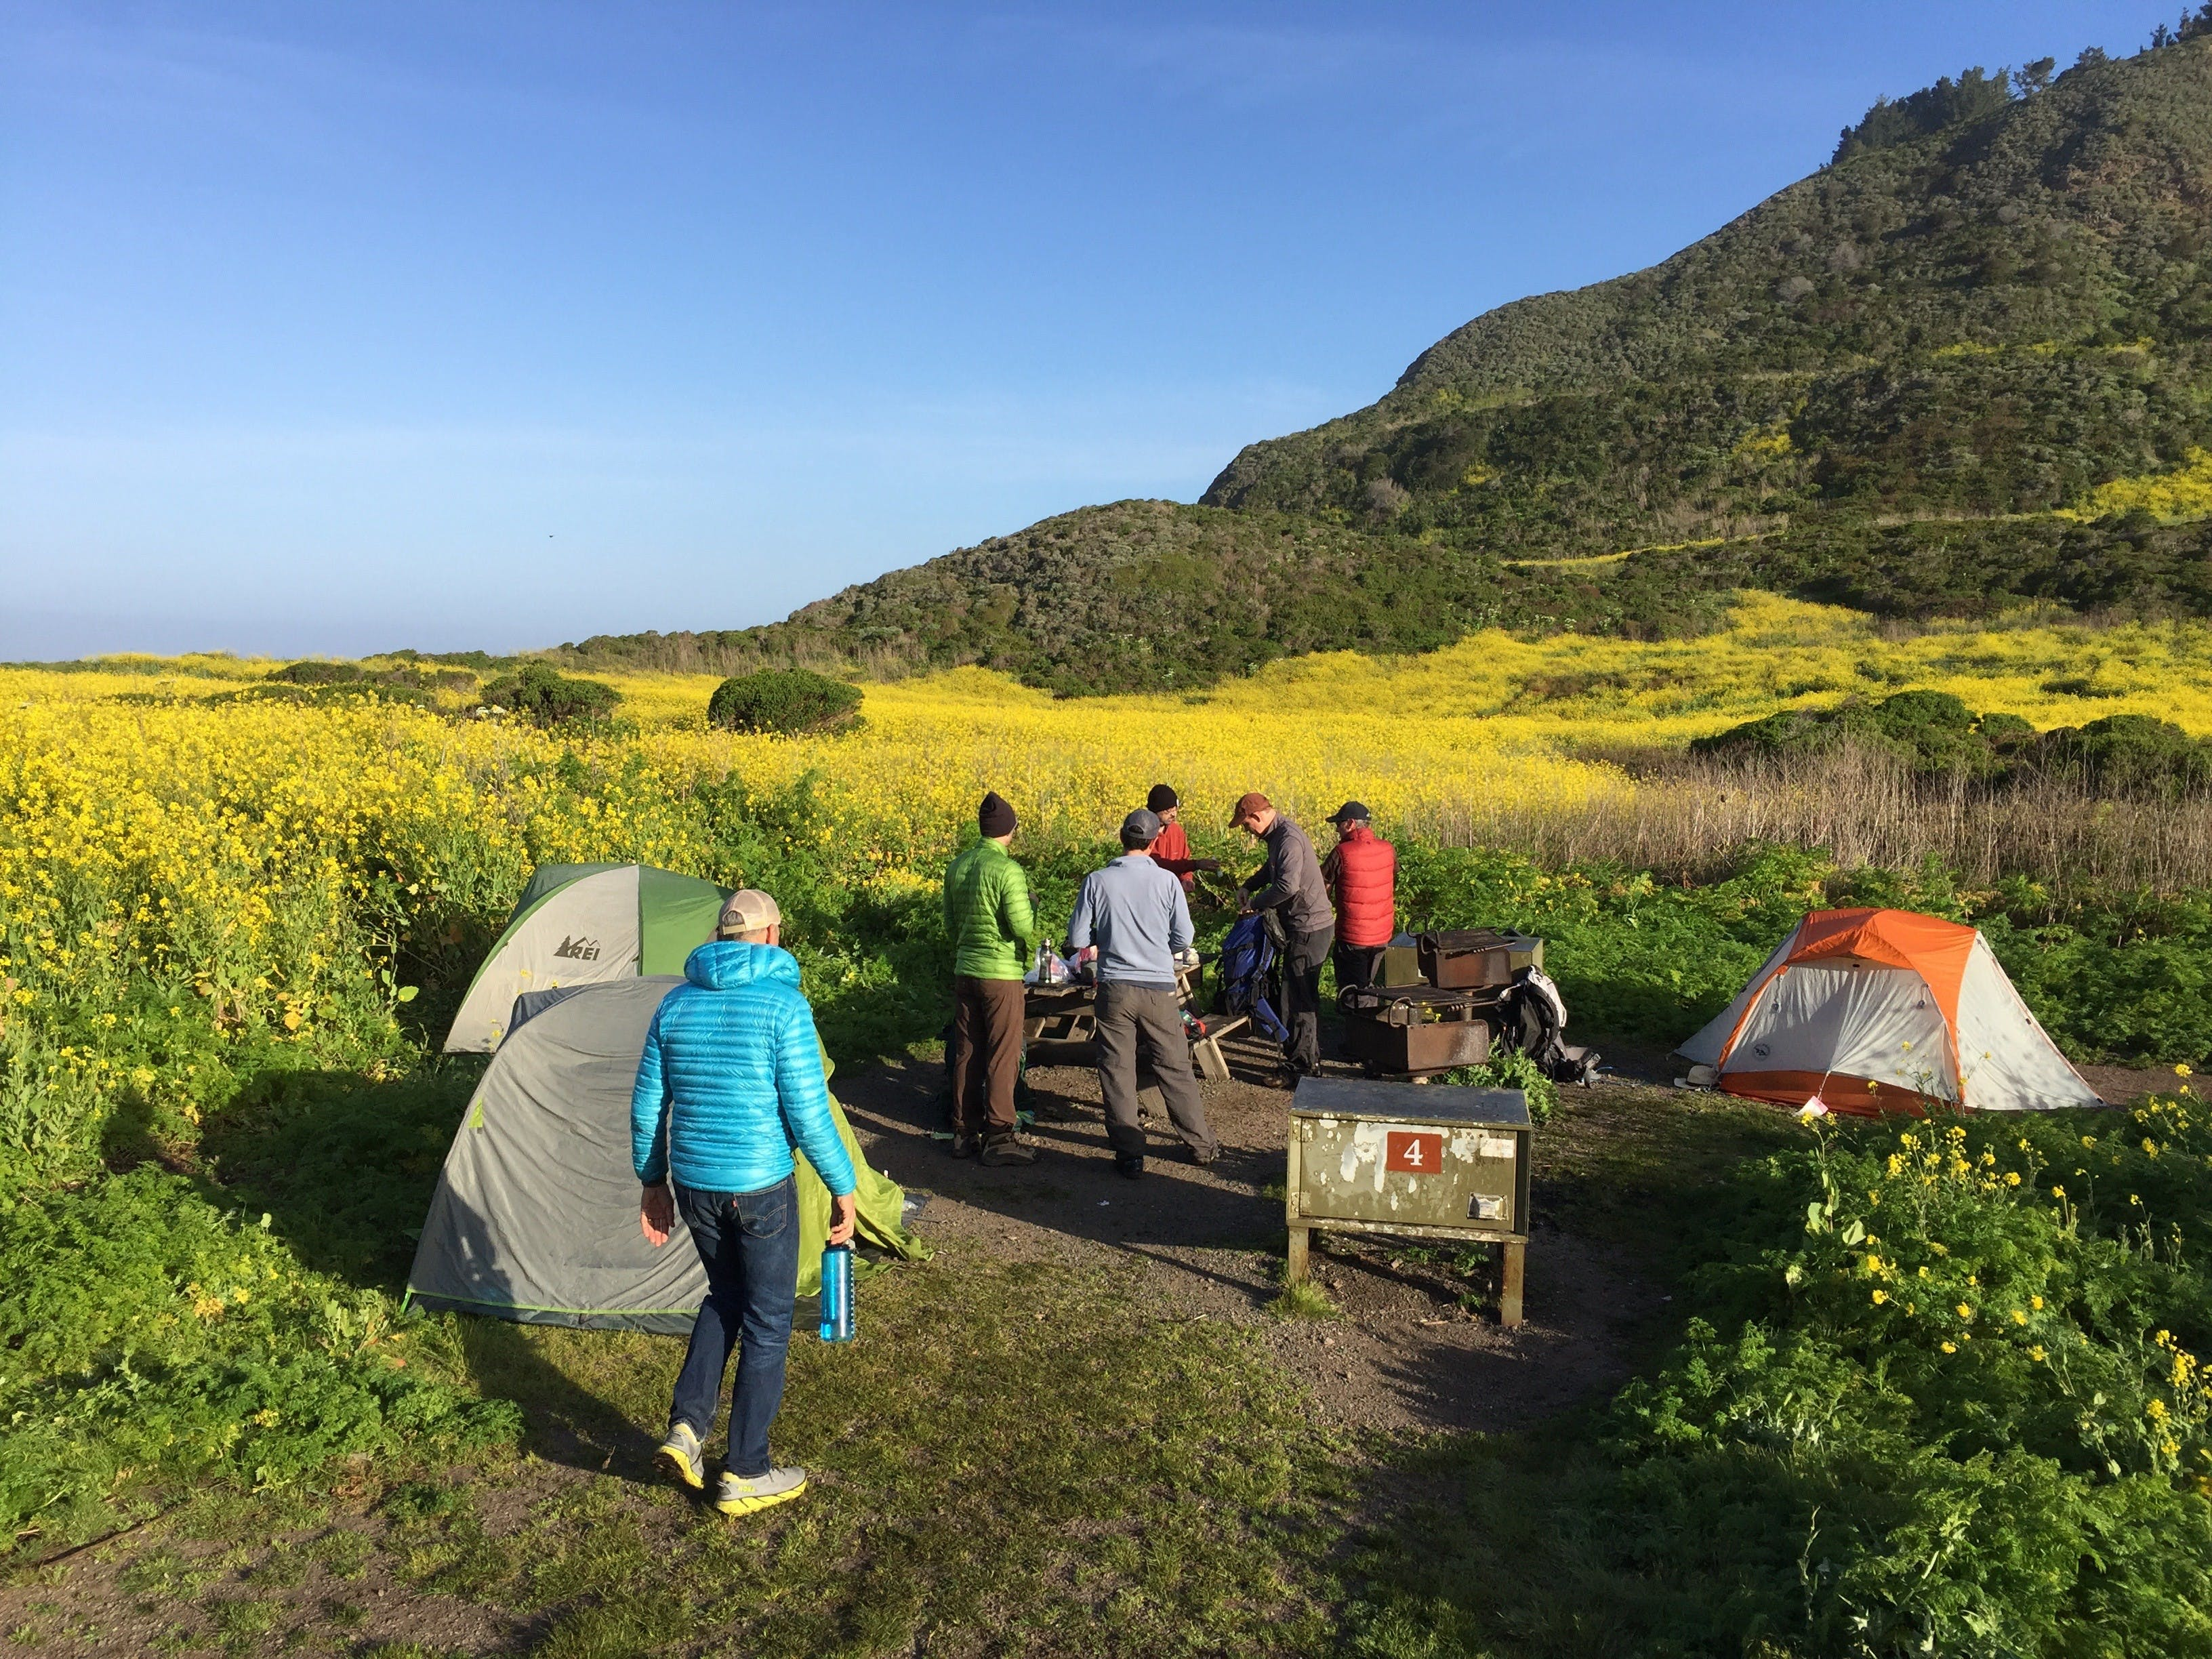 Friends set up a group camp with multiple tents at Wildcat Camp in Point Reyes National Seashore